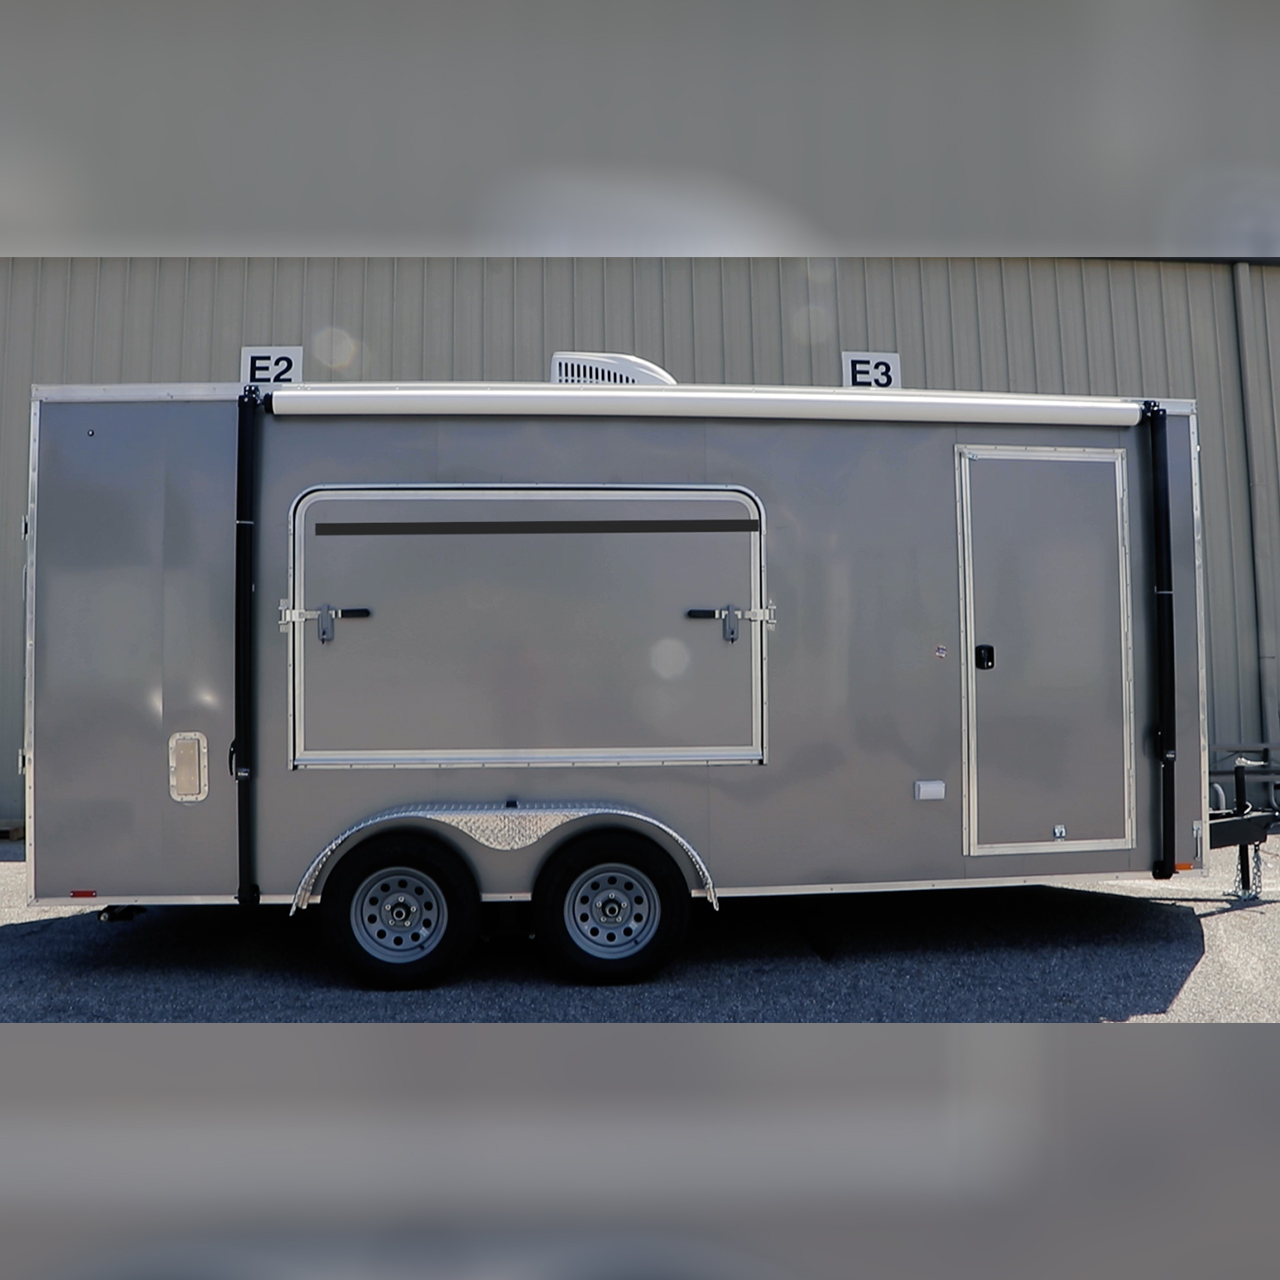 Camping Trailer - Off grid - Mobile Camping - Cargo Trailer